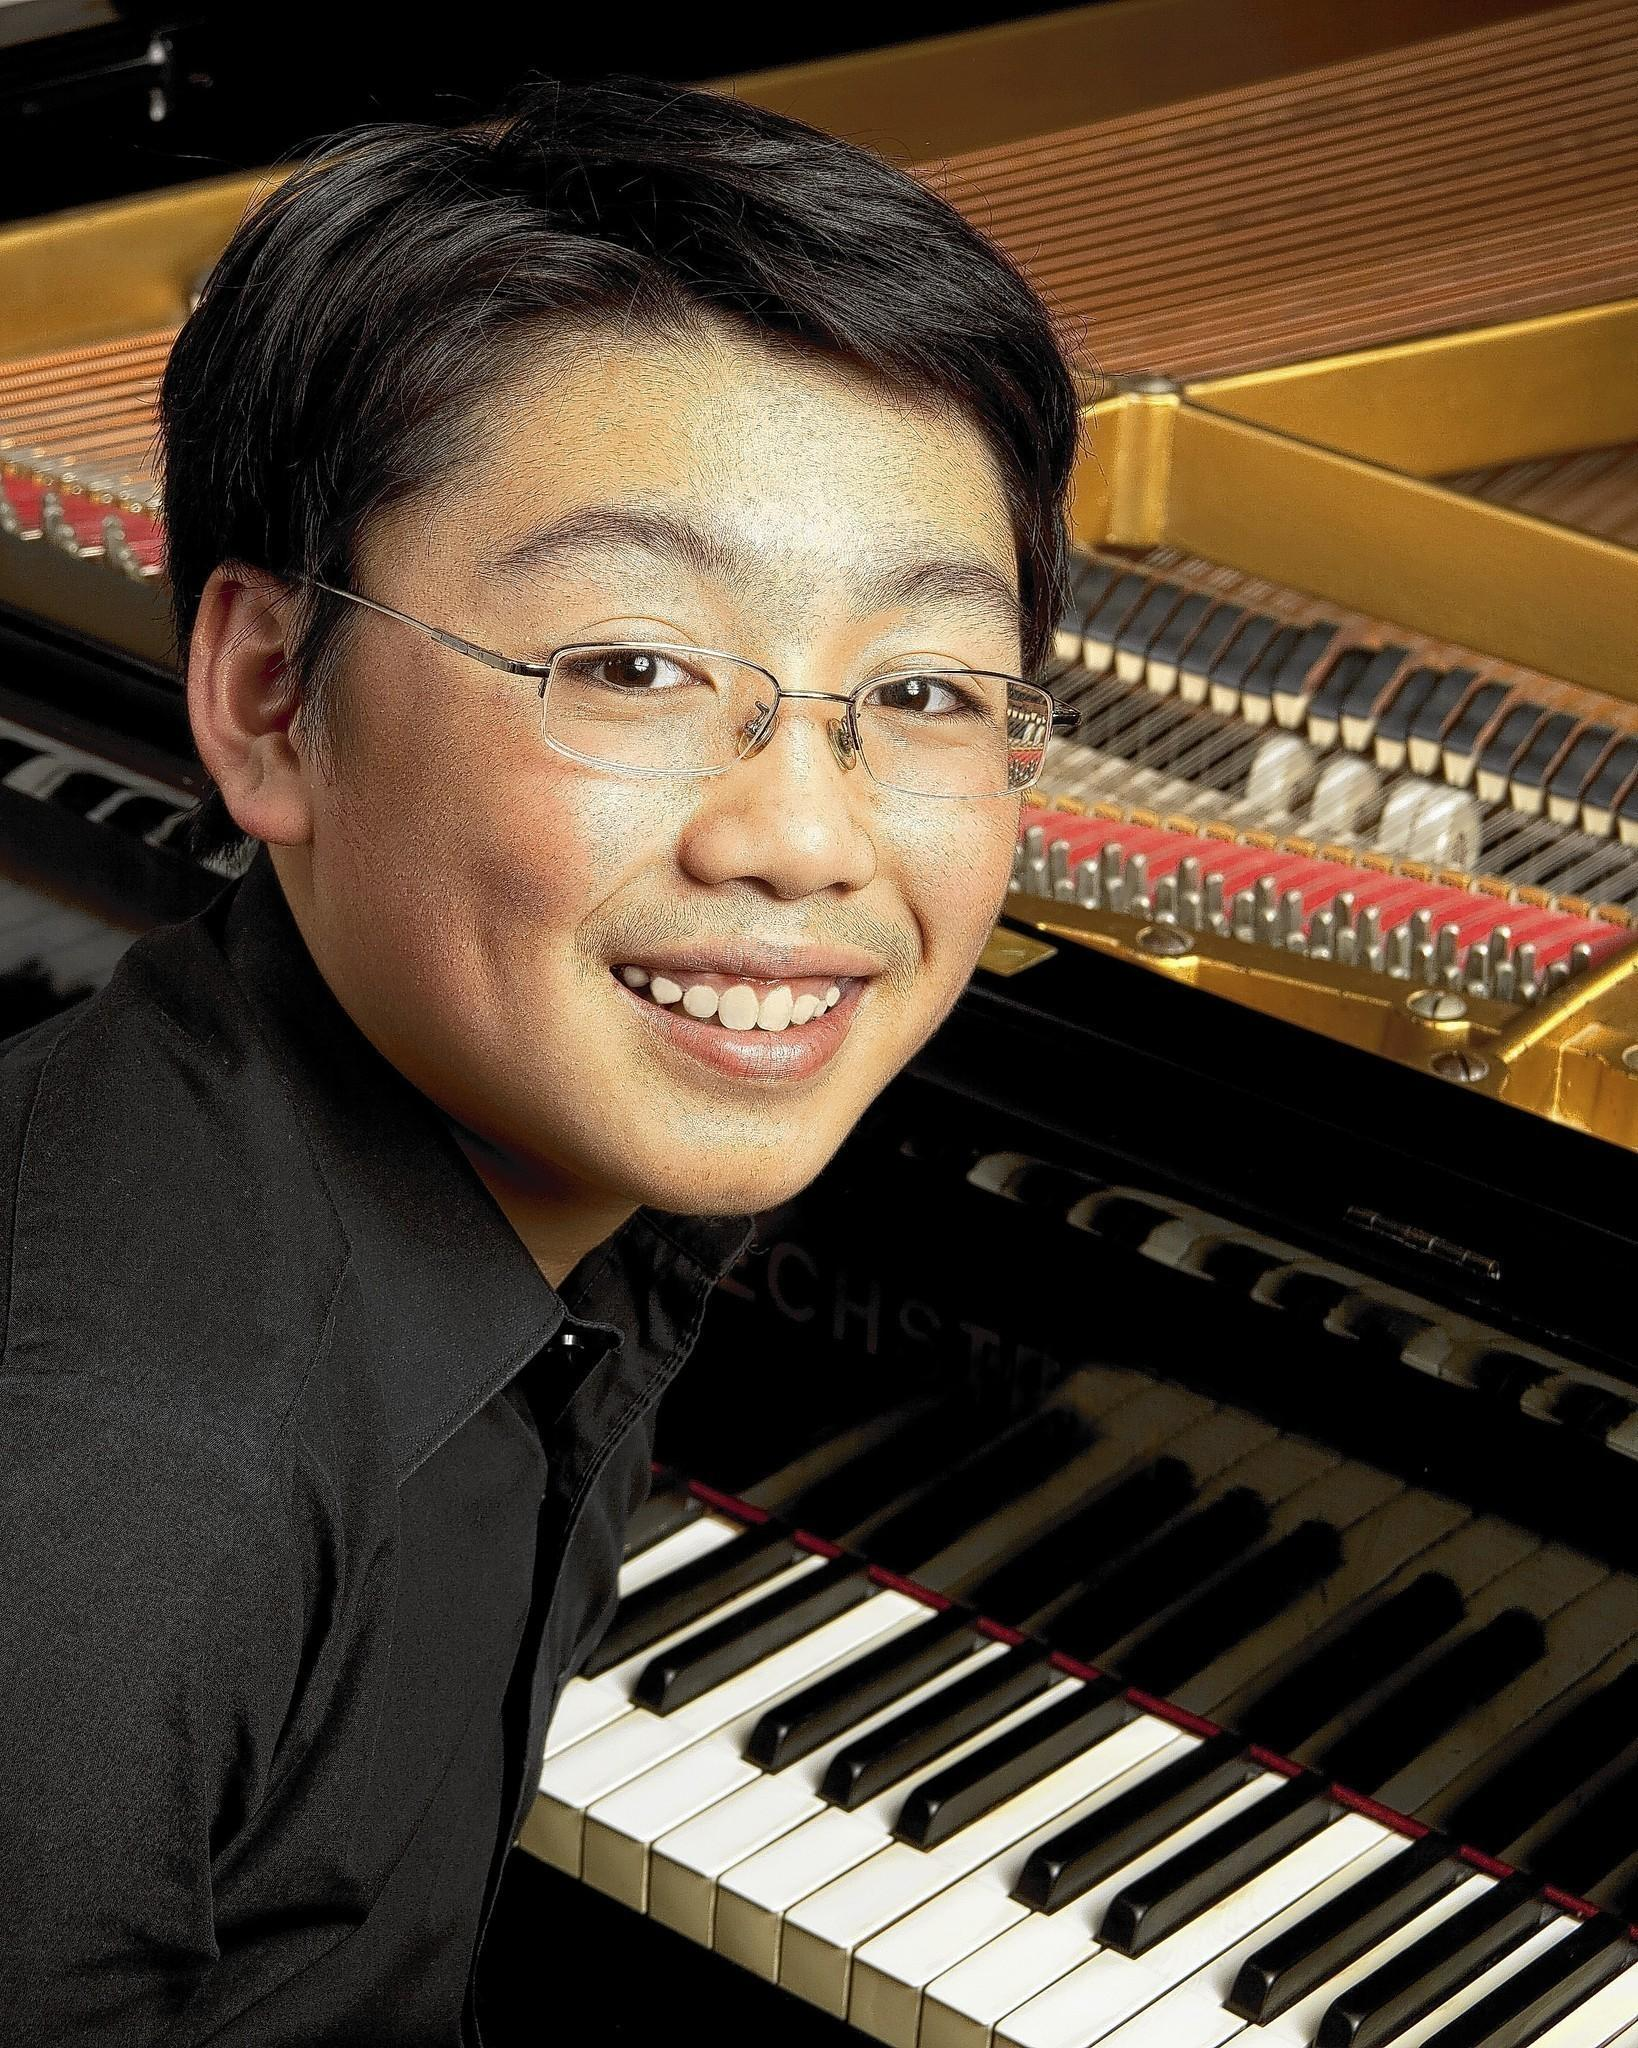 The precocious piano talent of George Li will be the centerpiece of the March 22 Candlelight Concert.